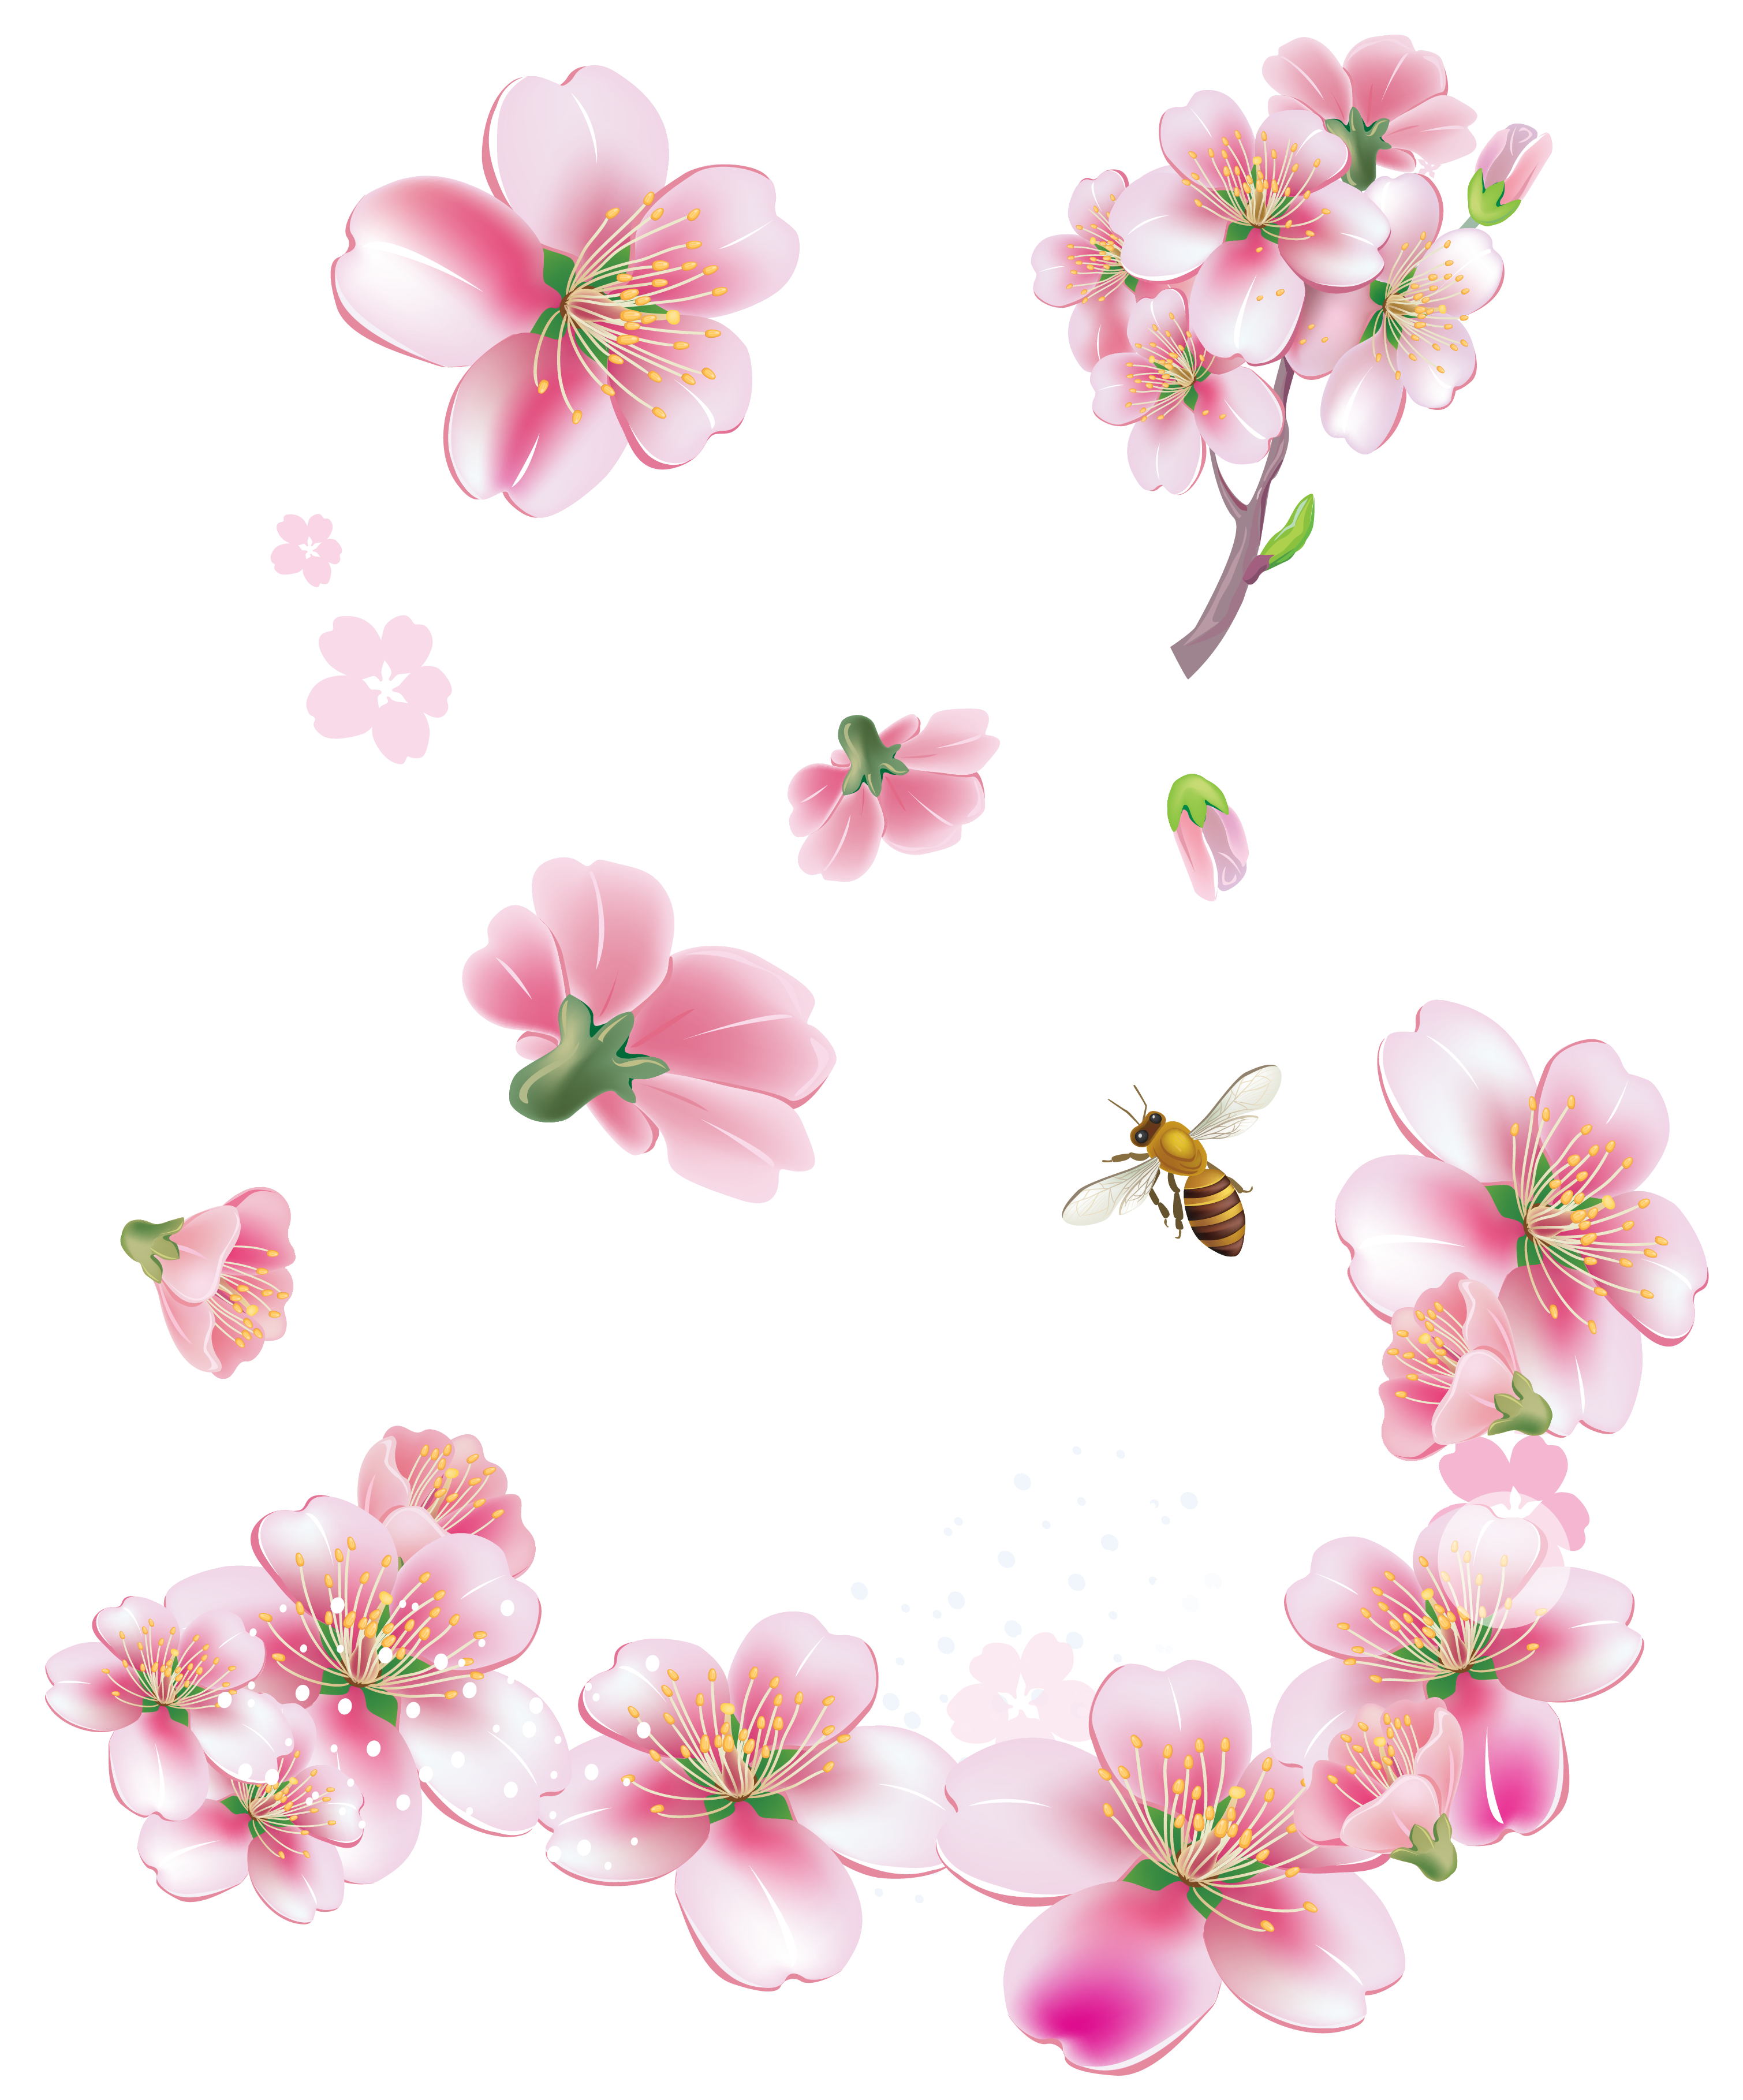 Spring pink trees flowers. Cherry blossom flower png